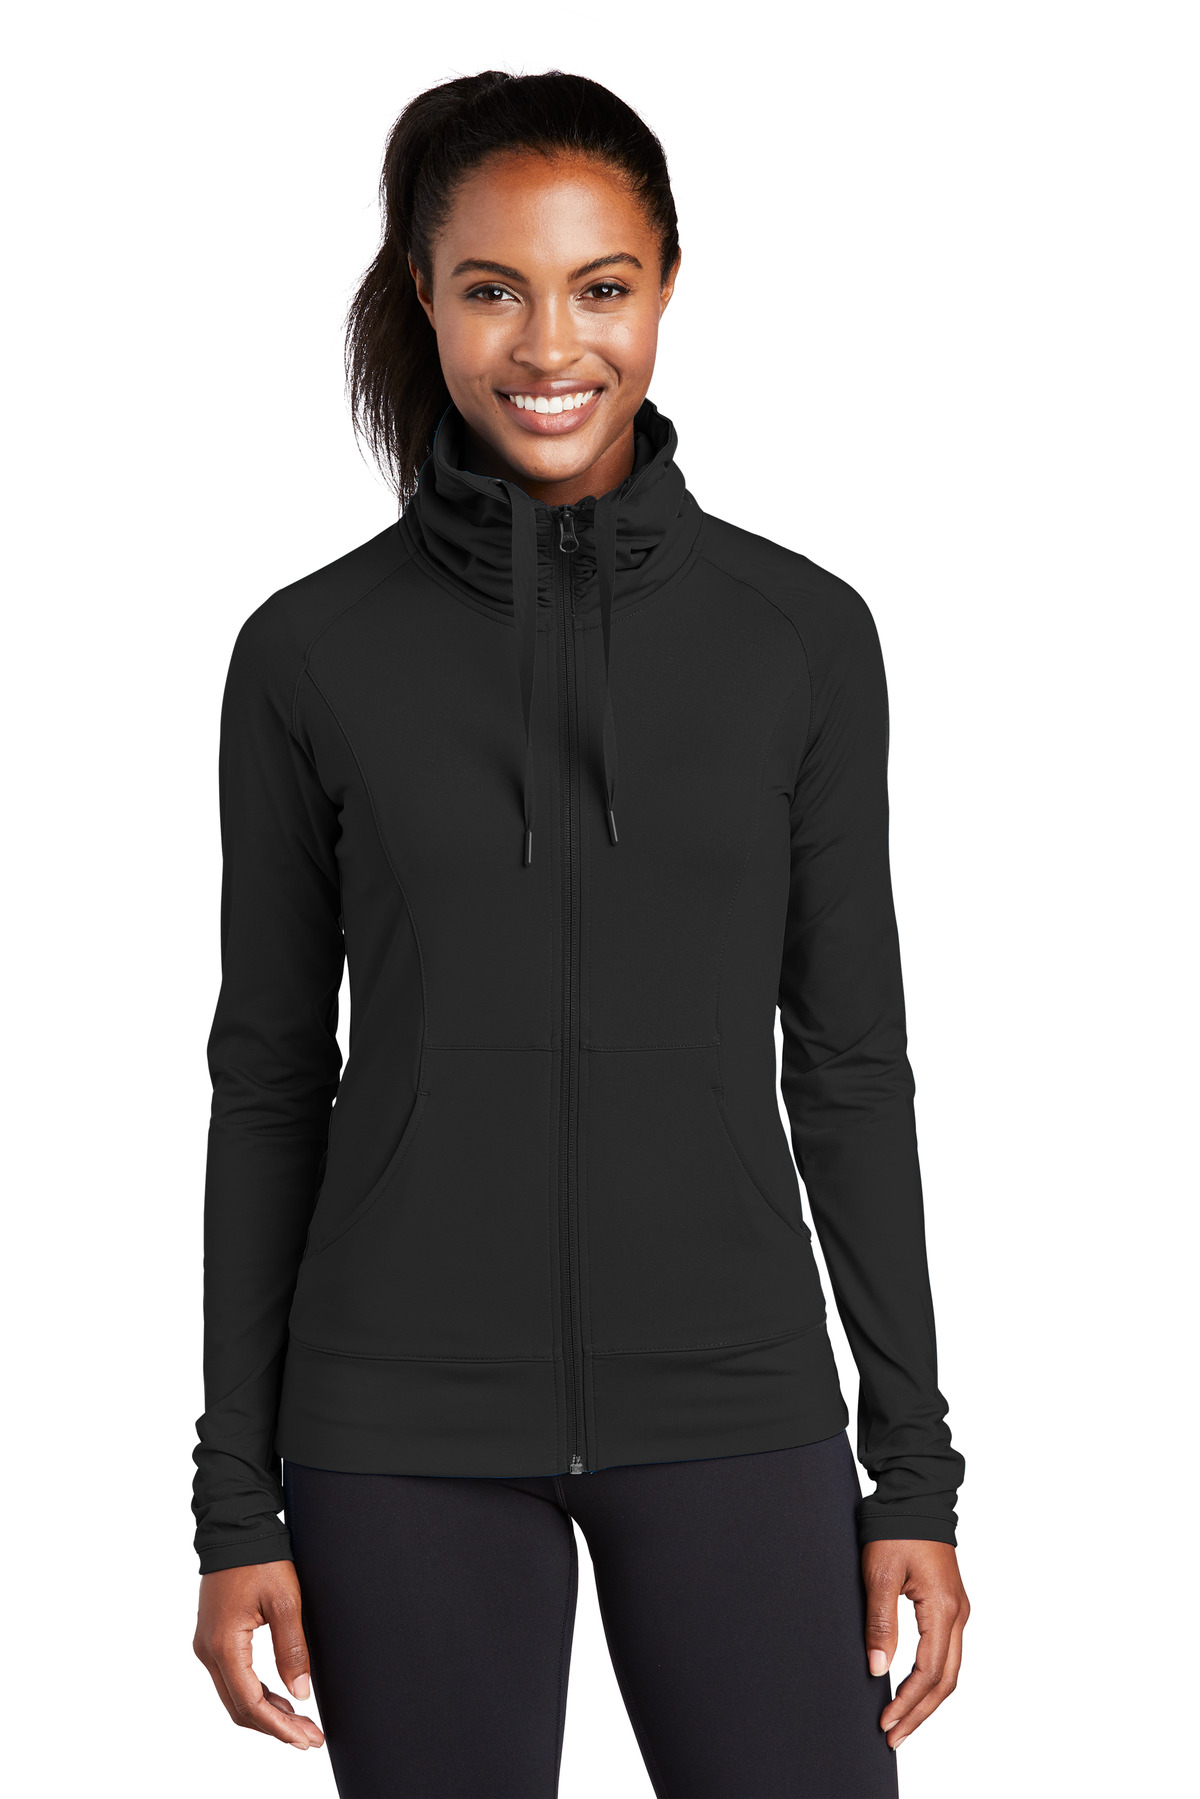 Sport-Tek ®  Ladies Sport-Wick ®  Stretch Full-Zip Jacket. LST852 - Black